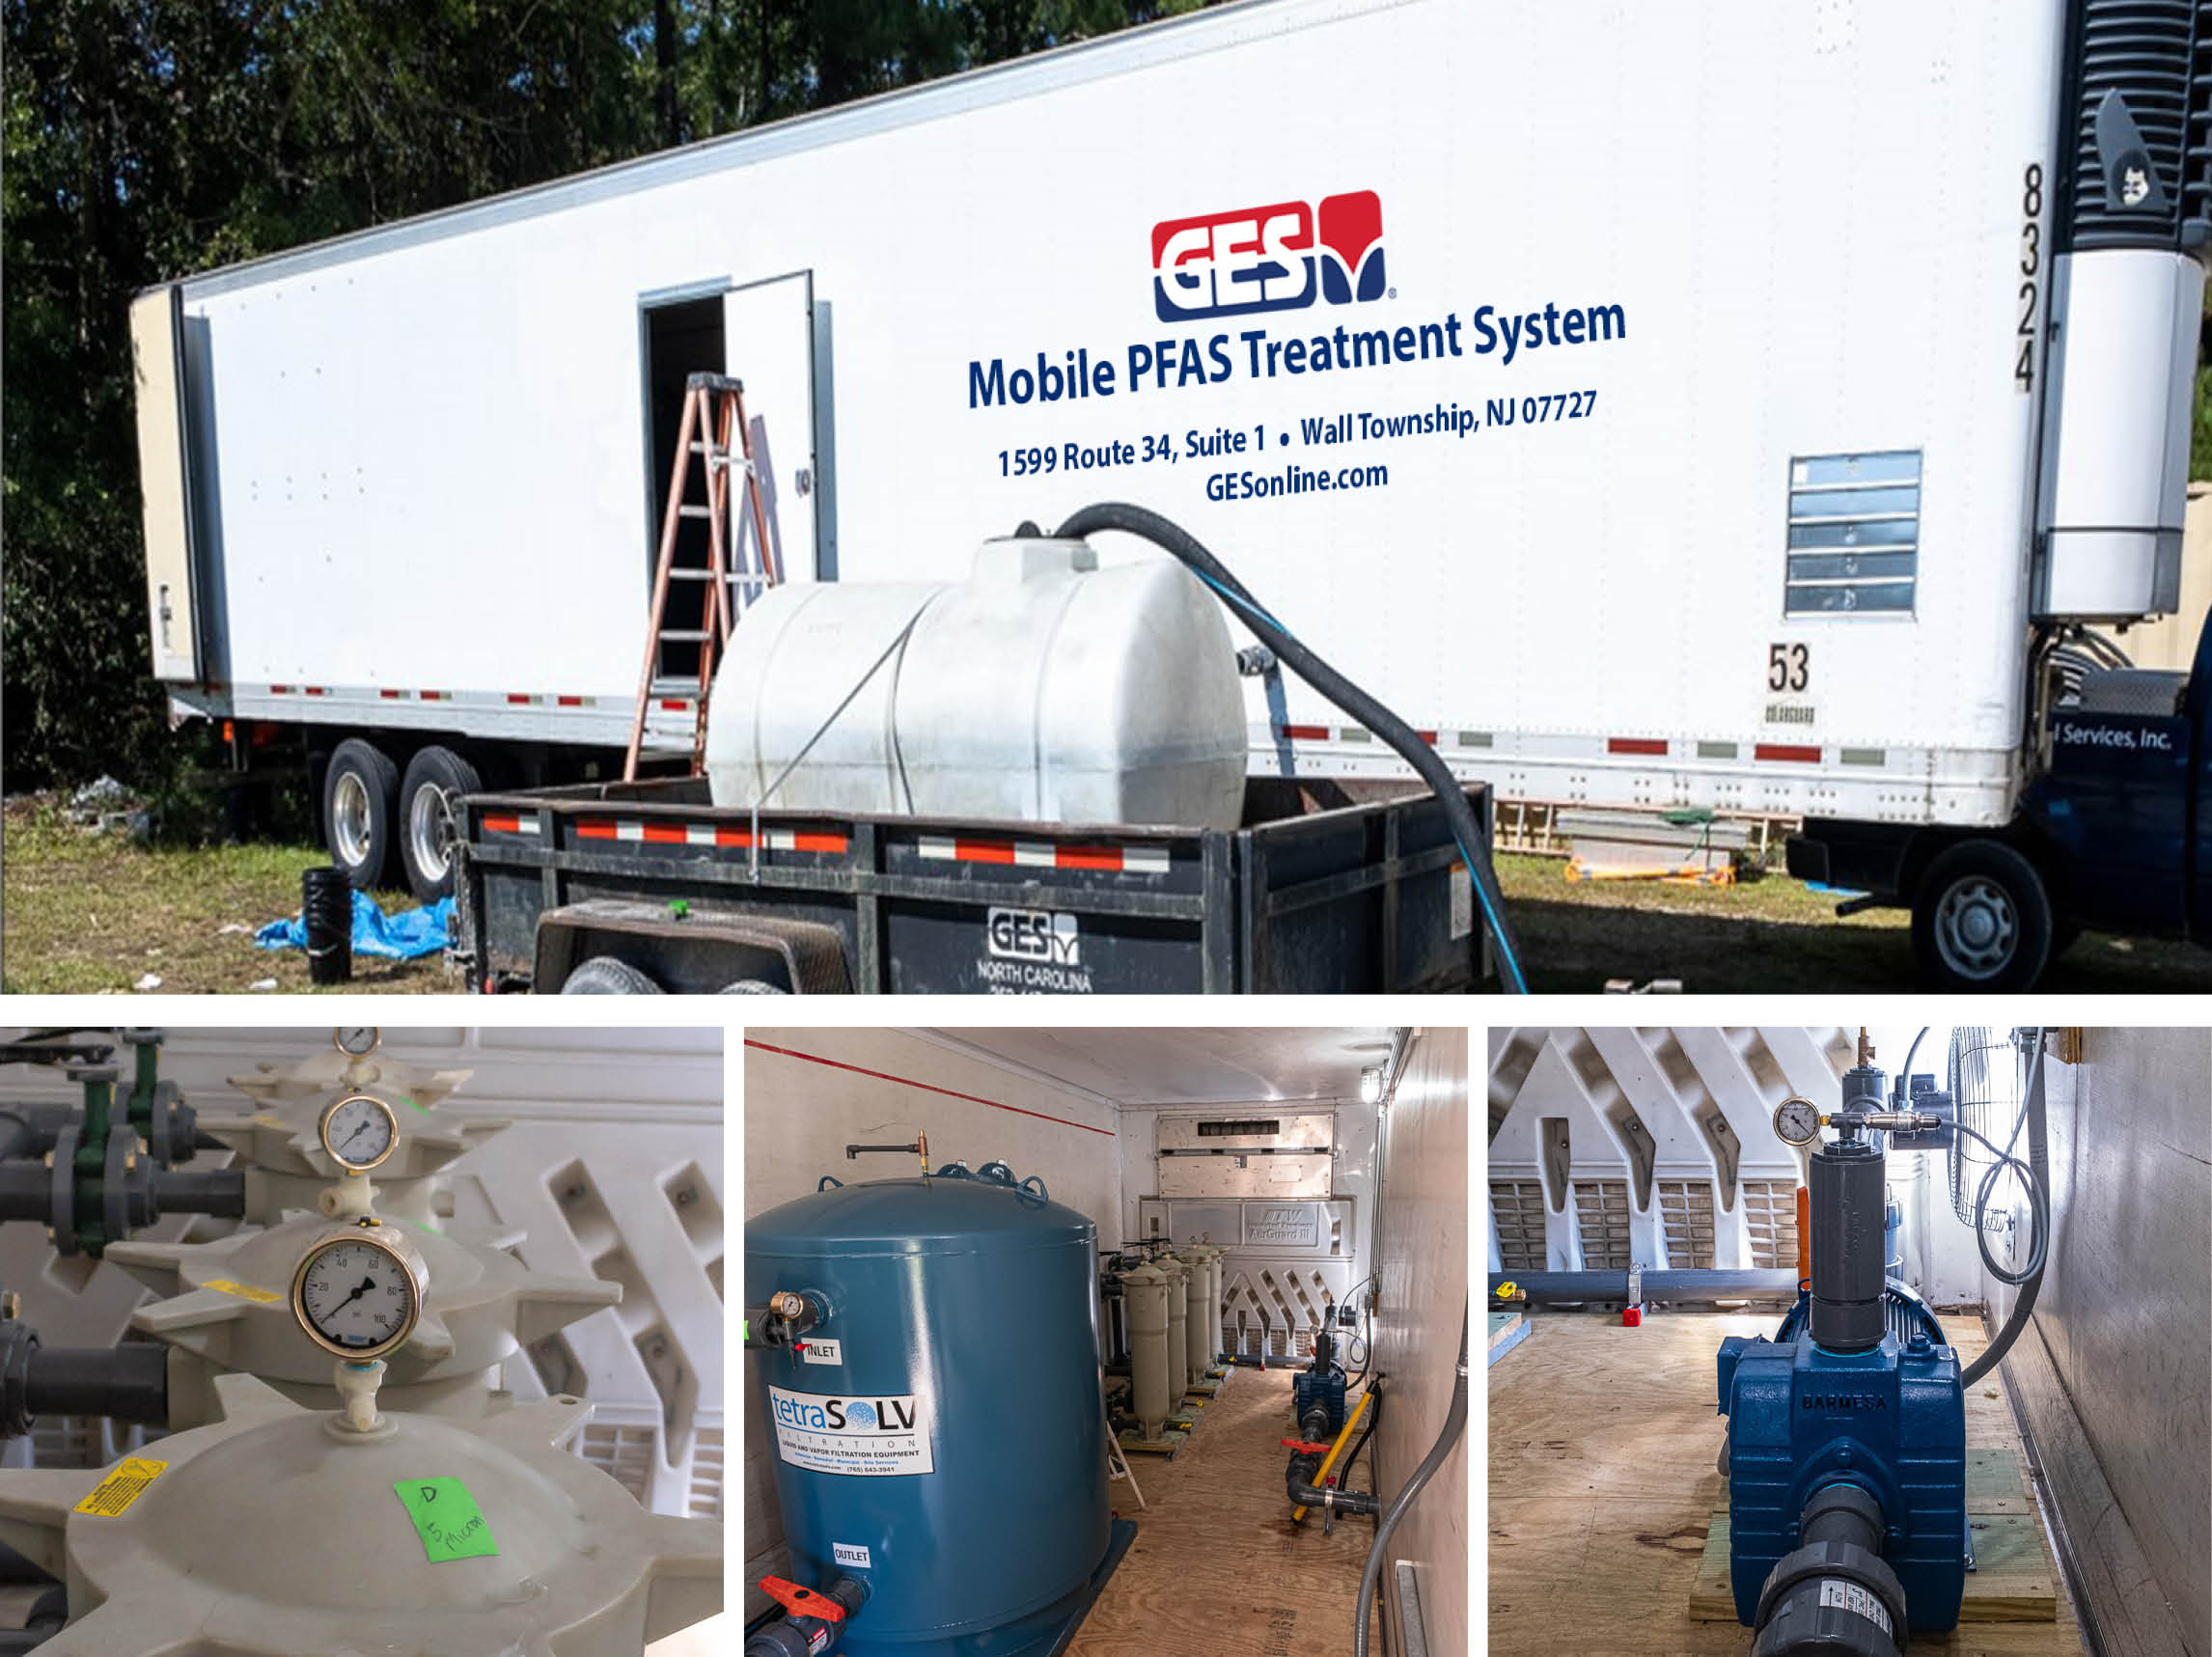 GES Mobile PFAS Treatment trailer